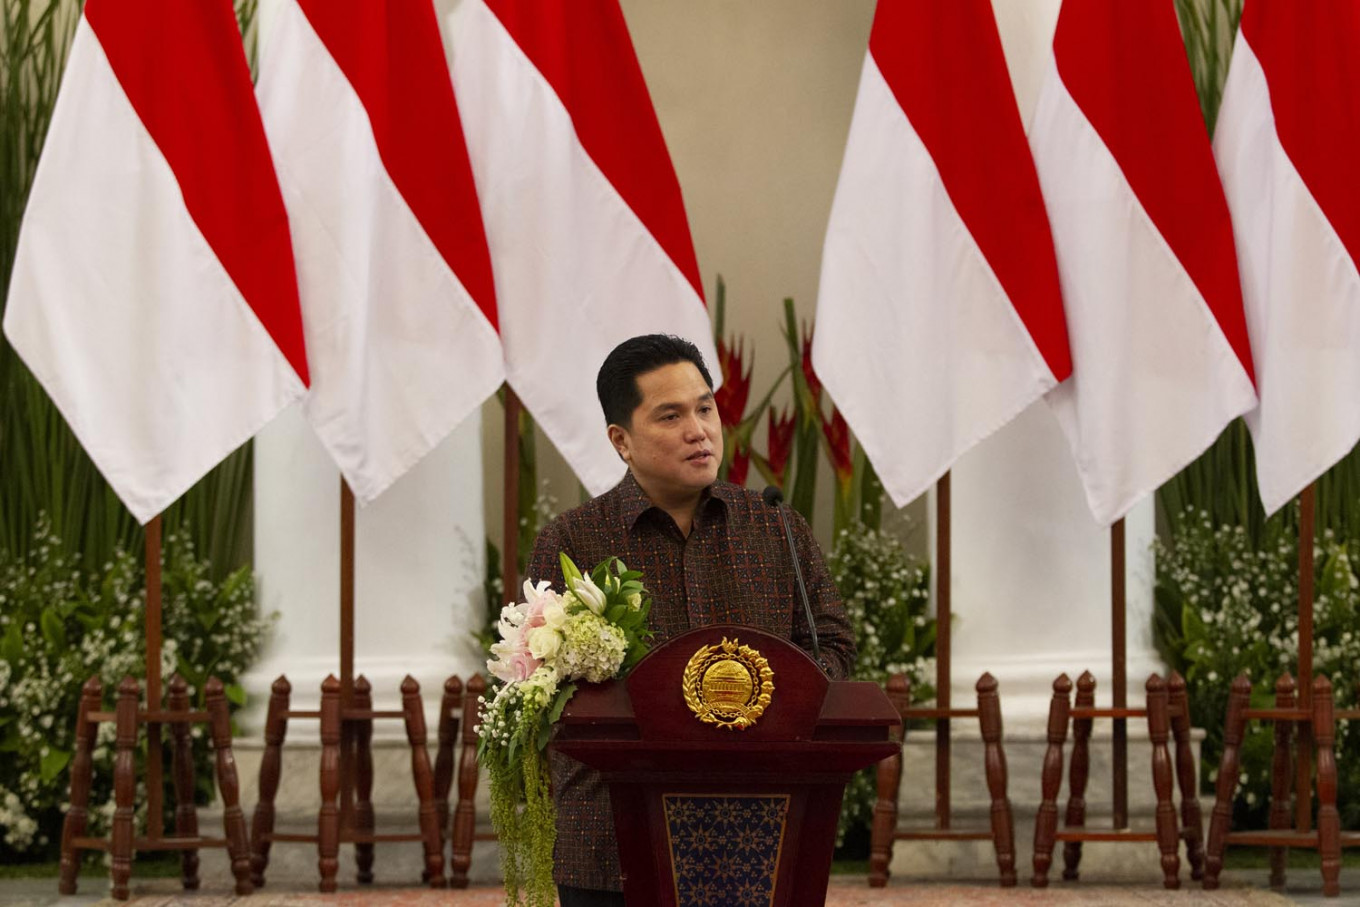 Erick Thohir, the man to watch in Indonesian politics